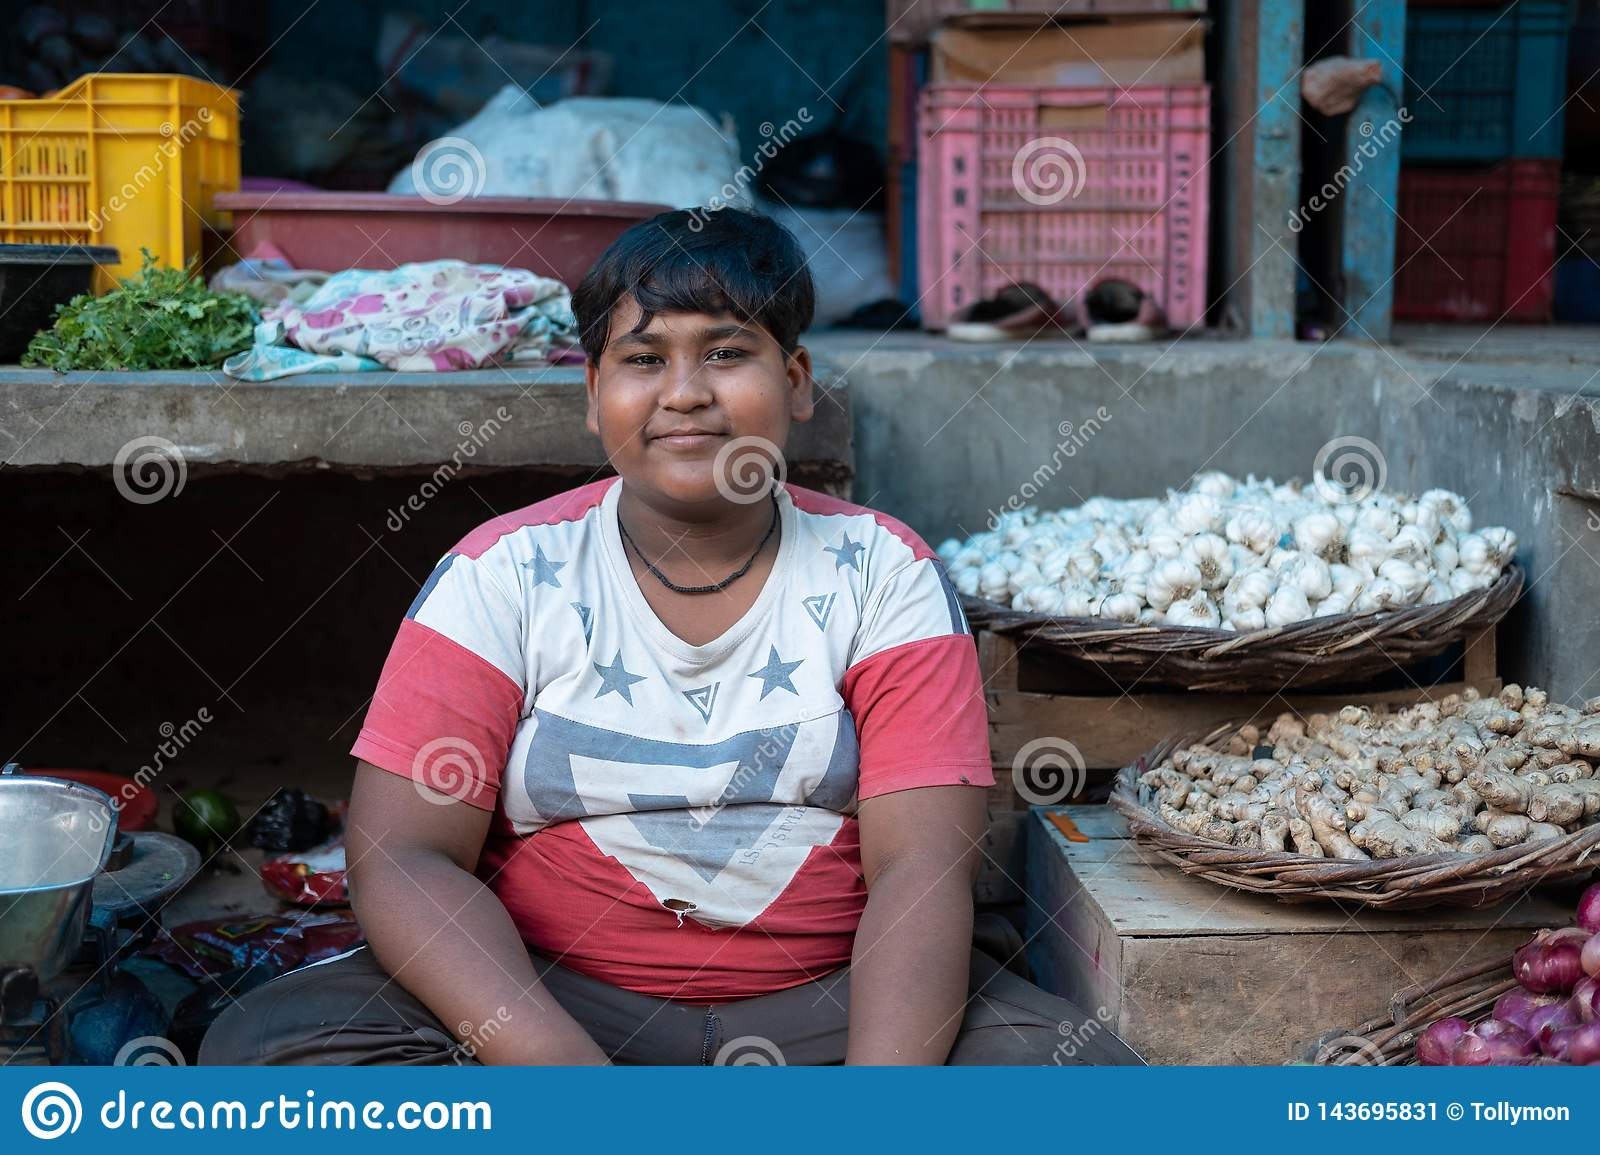 Bhadarsa, Uttar Pradesh / India - April 2, 2019: A boy poses for a photo in his family`s vegetable stall in Bhadarsa.